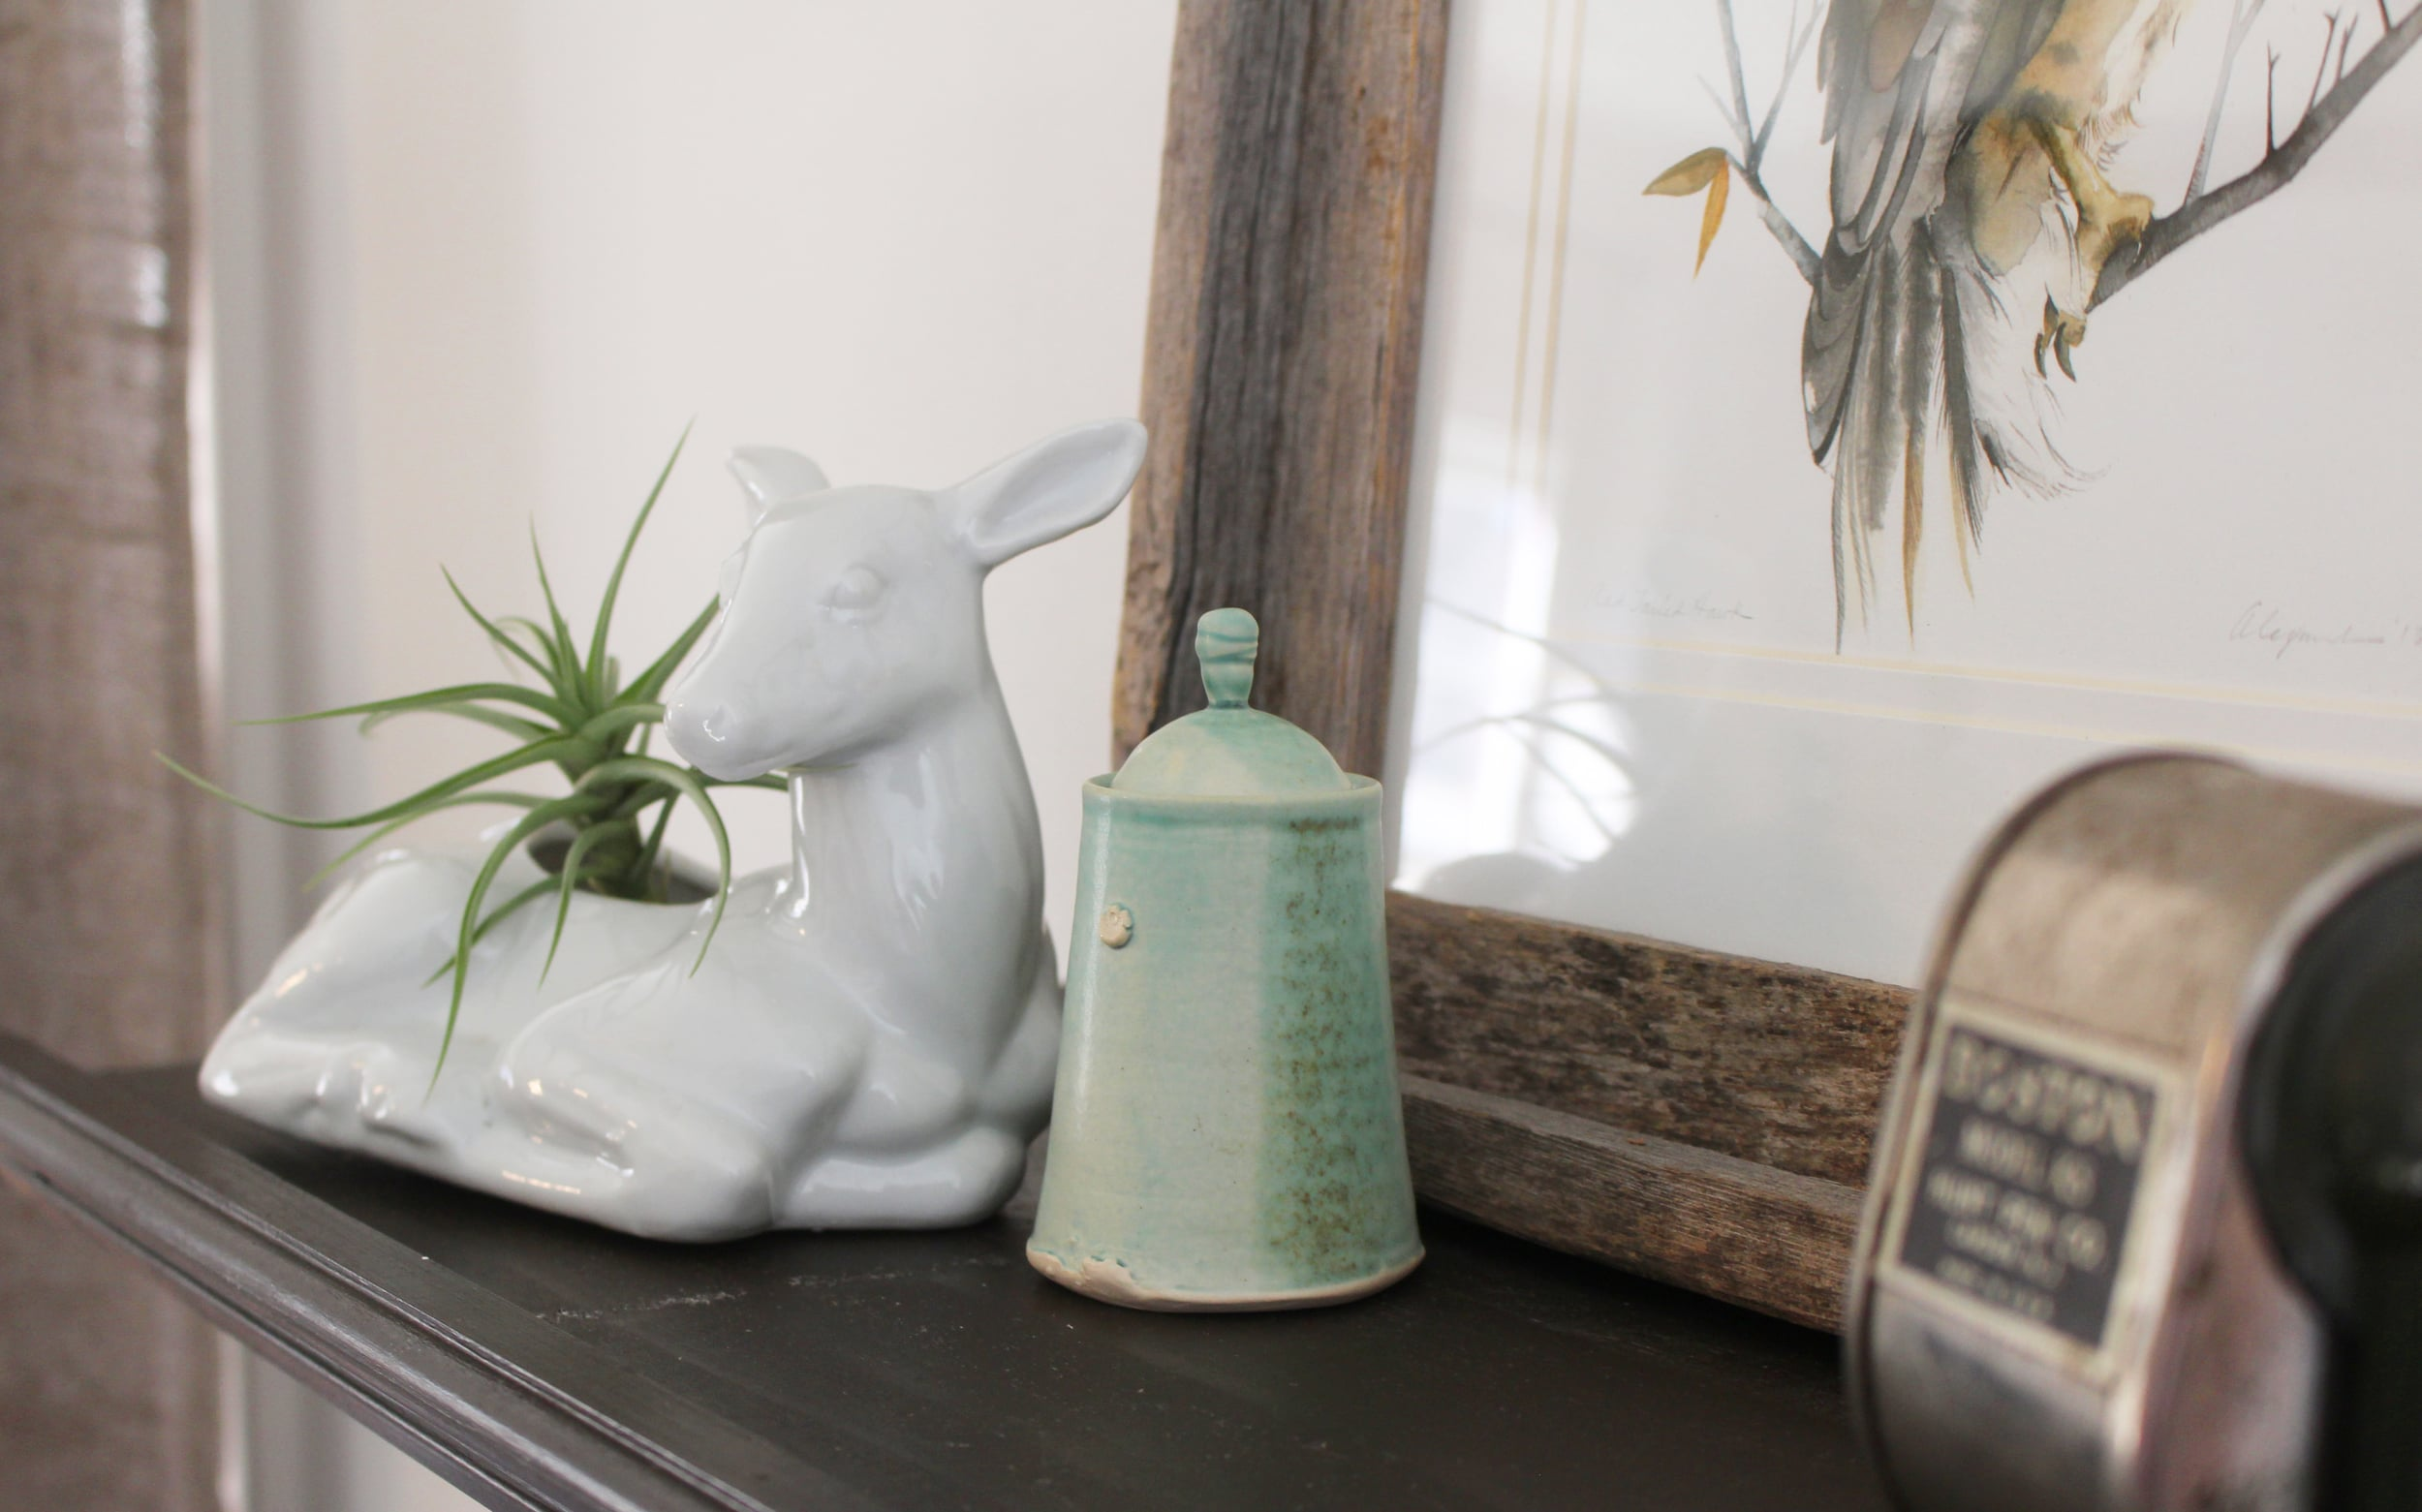 One of my favorite areas in my studio. The little sea-foam green jar is from  Illyria  Pottery. I love her work!